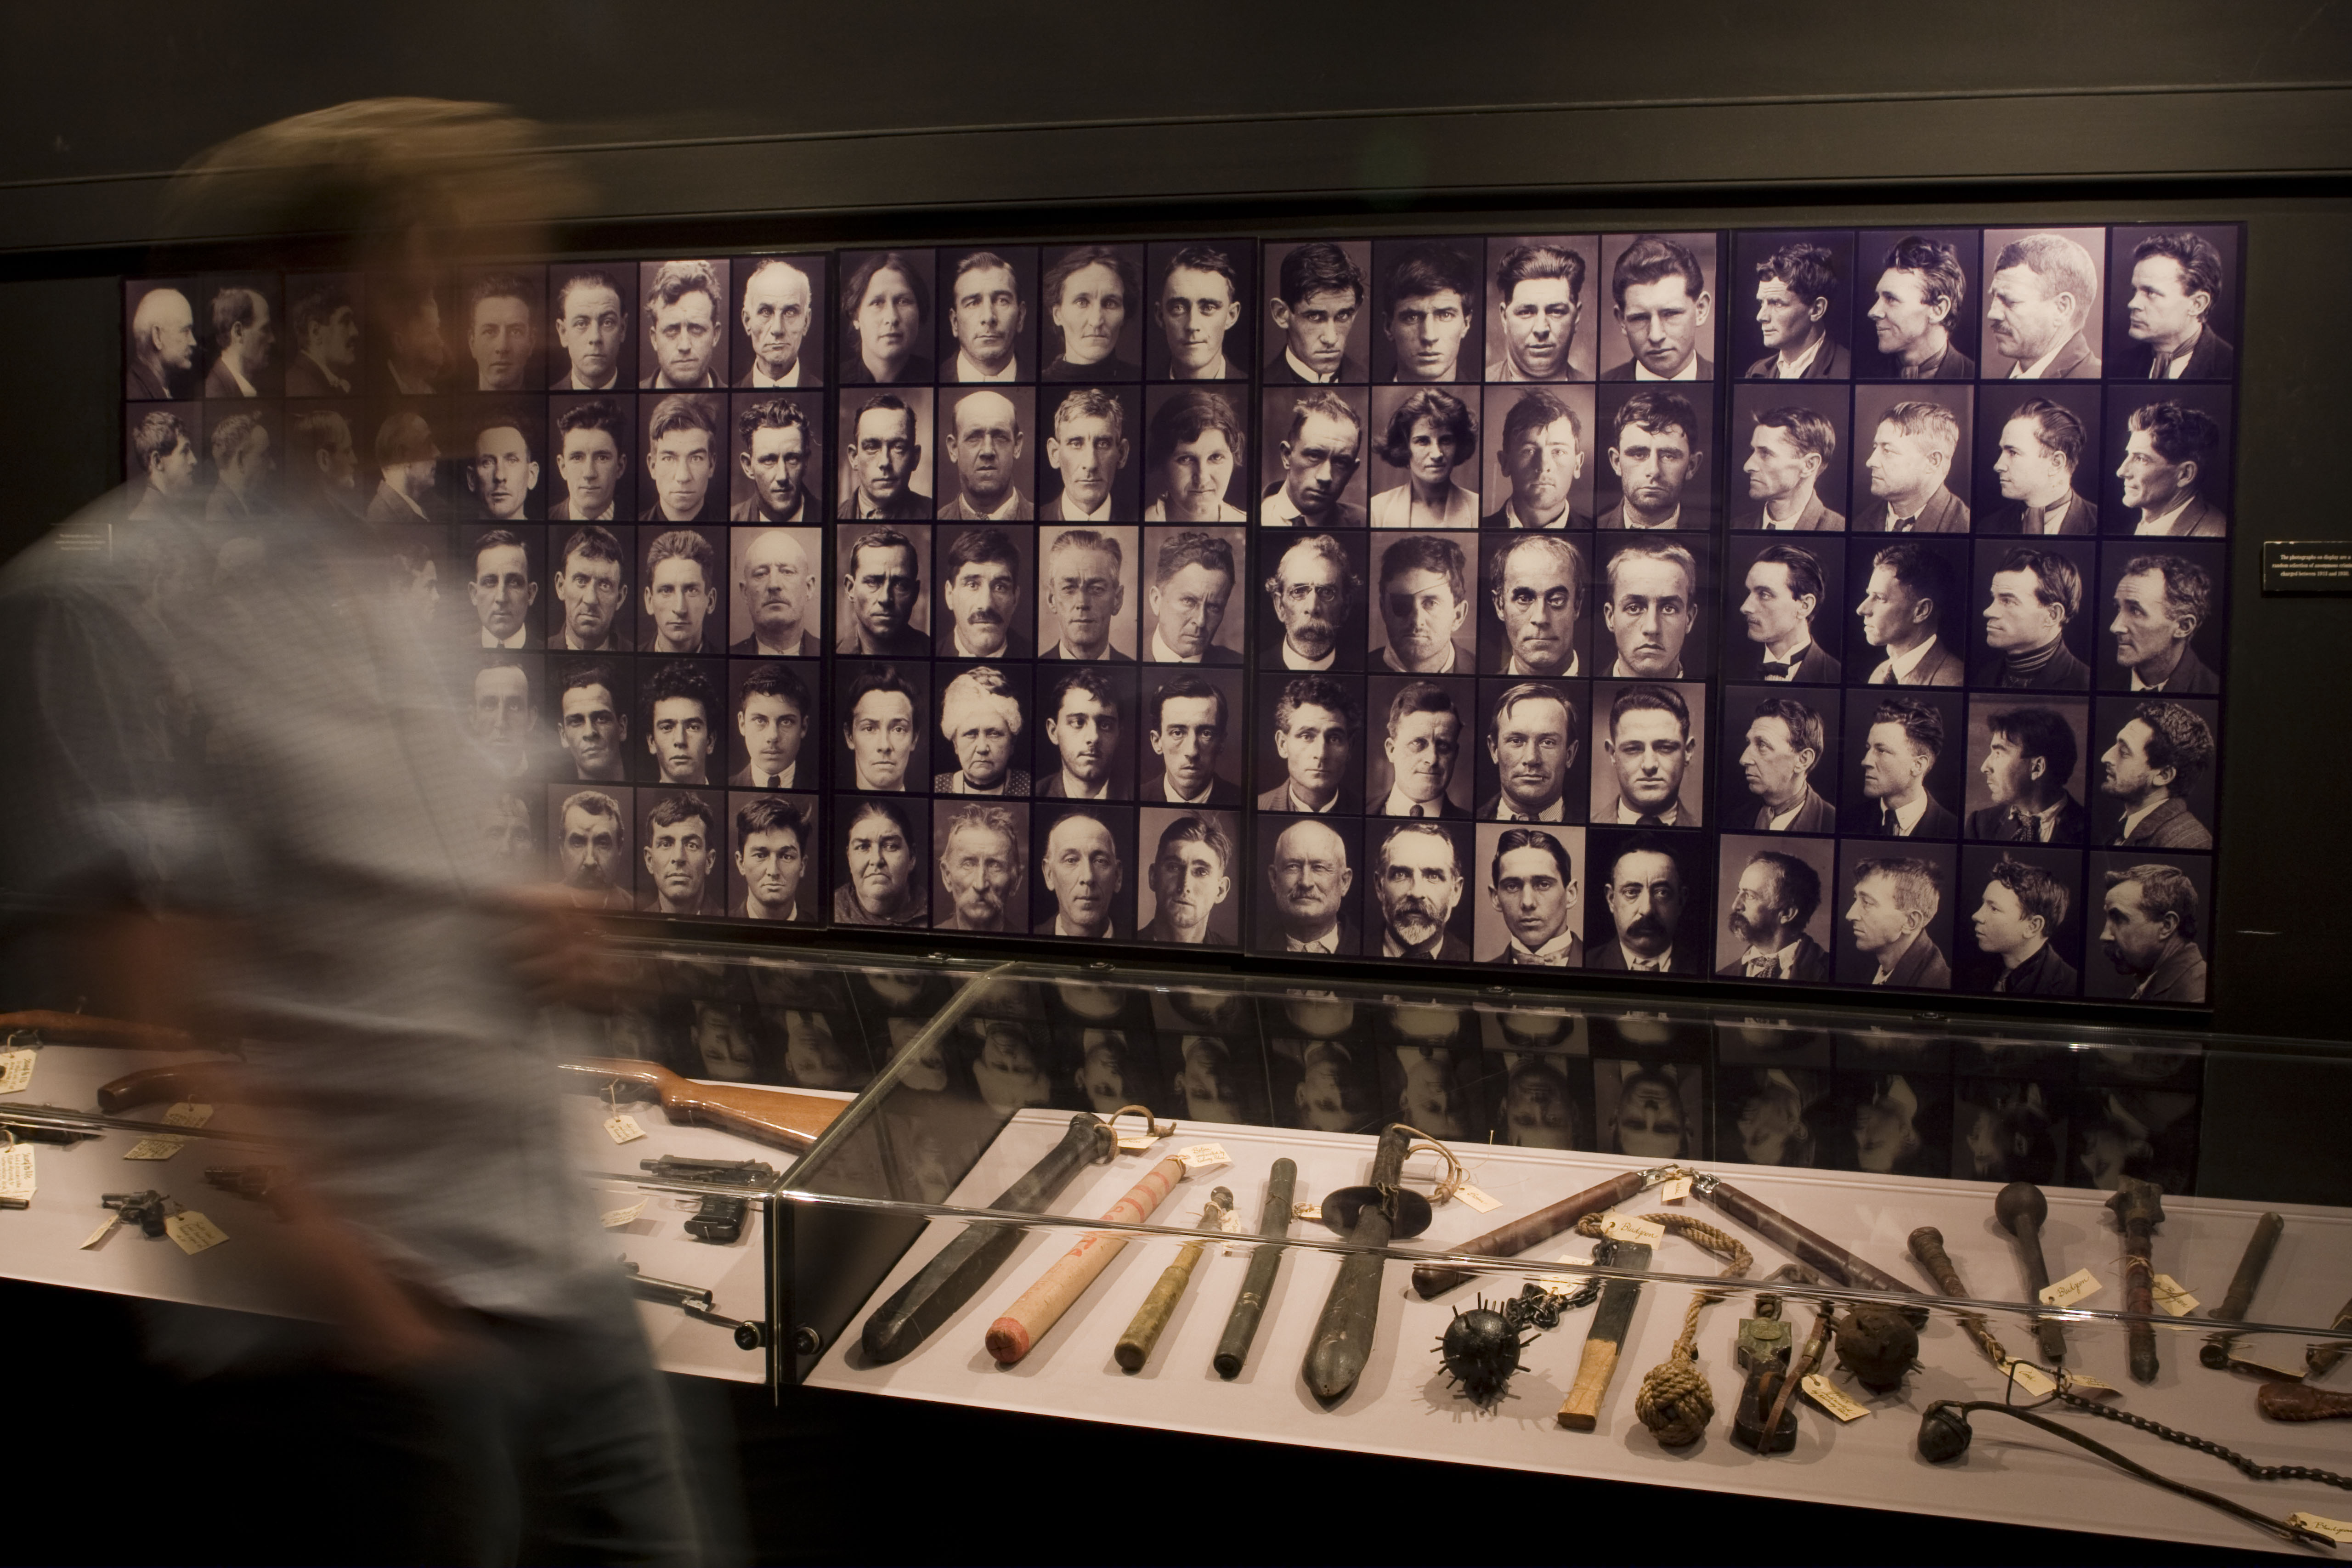 Photo showing person rushing past a photographic display of portraits and weapons under glass in a showcase.